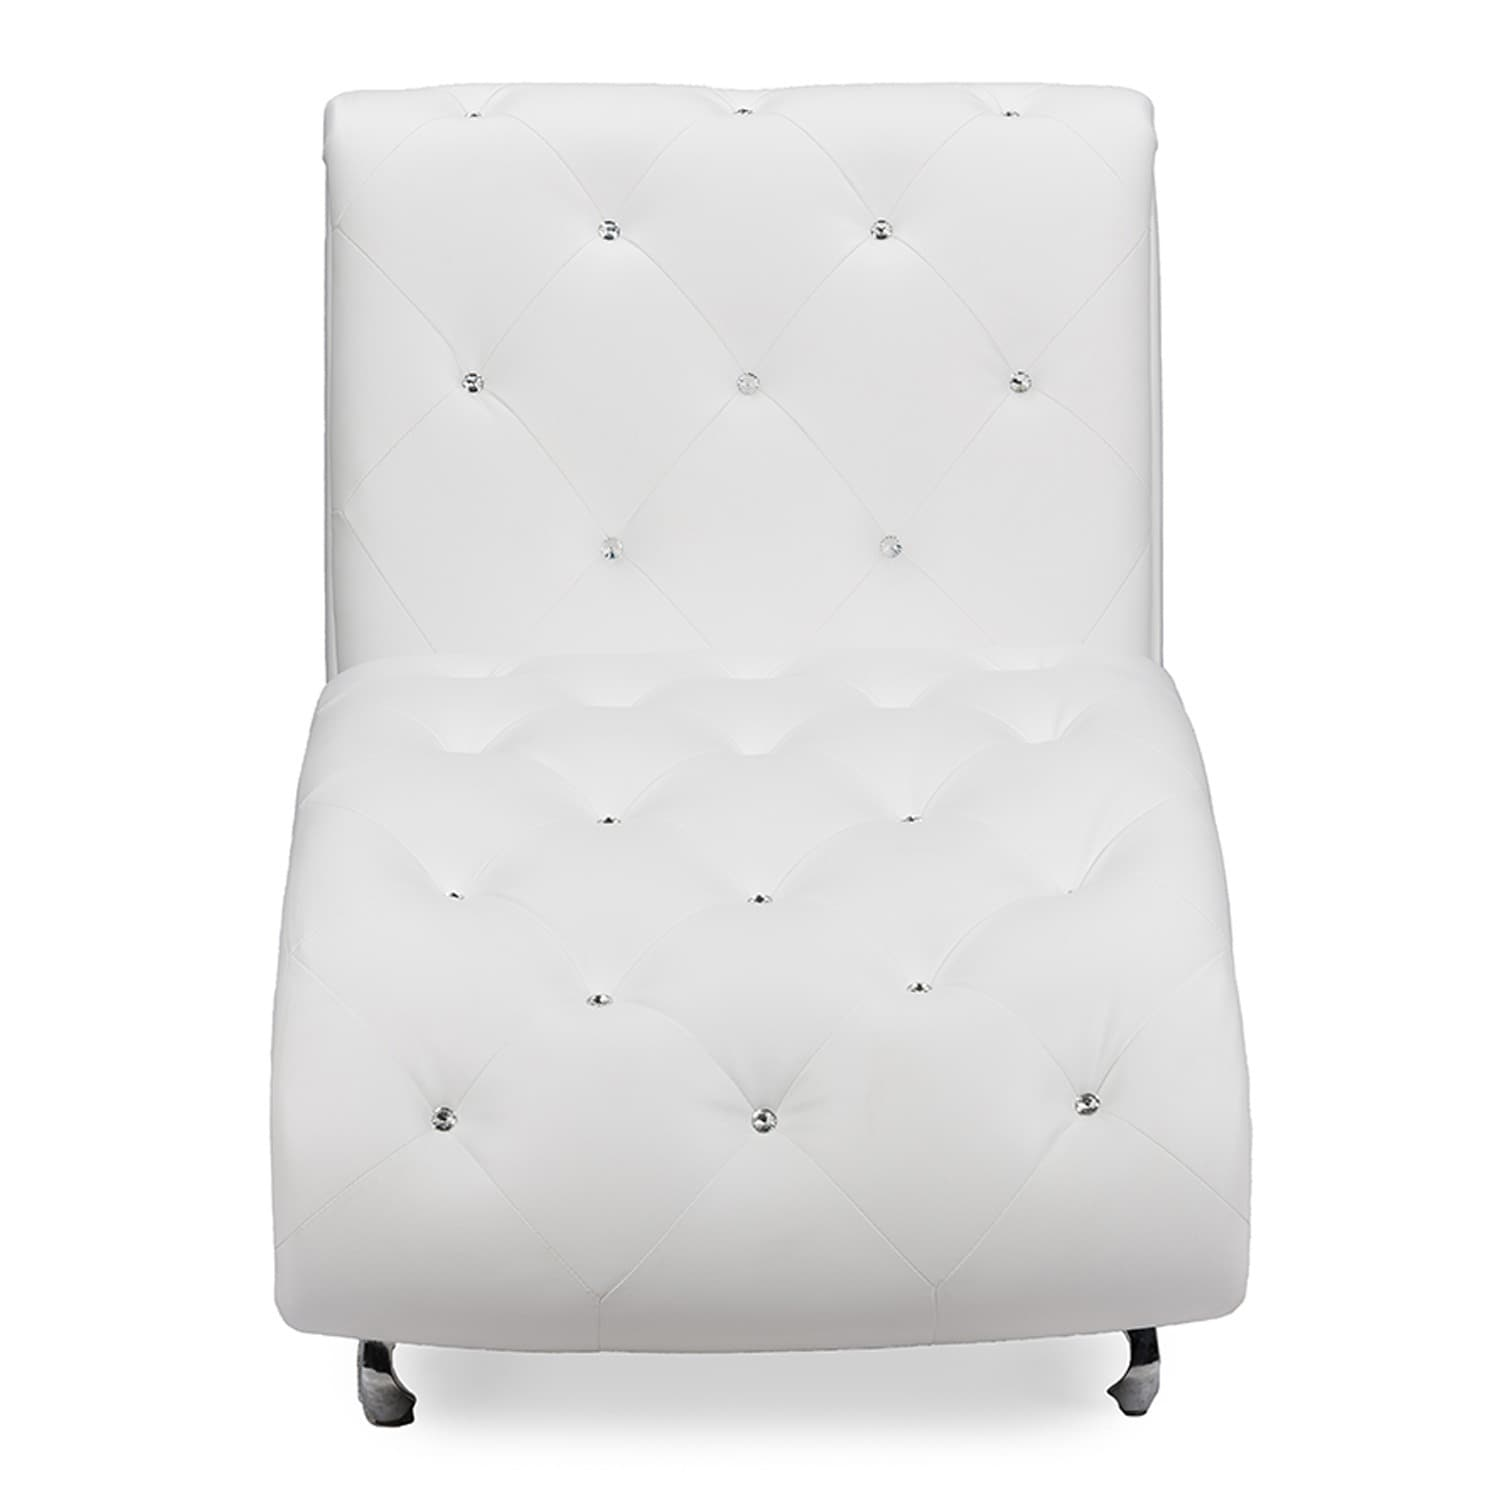 Shop Baxton Studio Pease Contemporary White Faux Leather Upholstered  Crystal Button Tufted Chaise Lounge   Free Shipping Today   Overstock.com    10129159